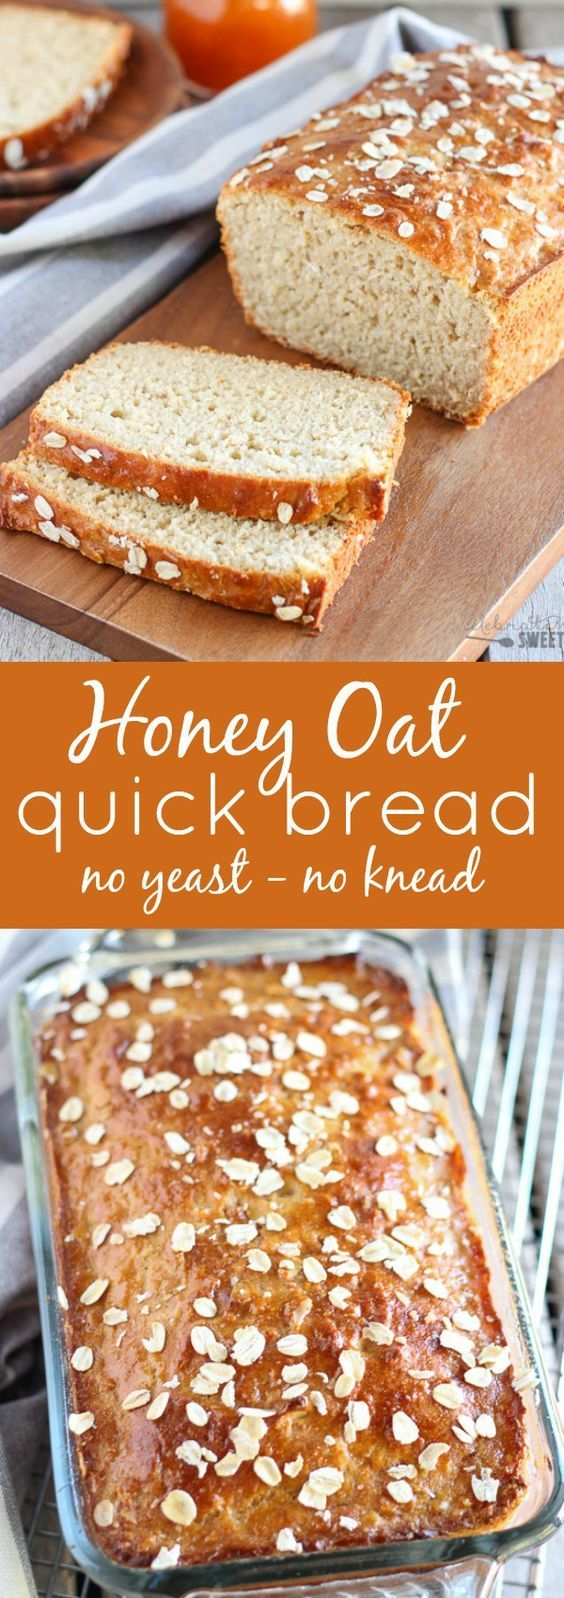 Honey Oat Quick Bread - No yeast, no knead, ready in an ...